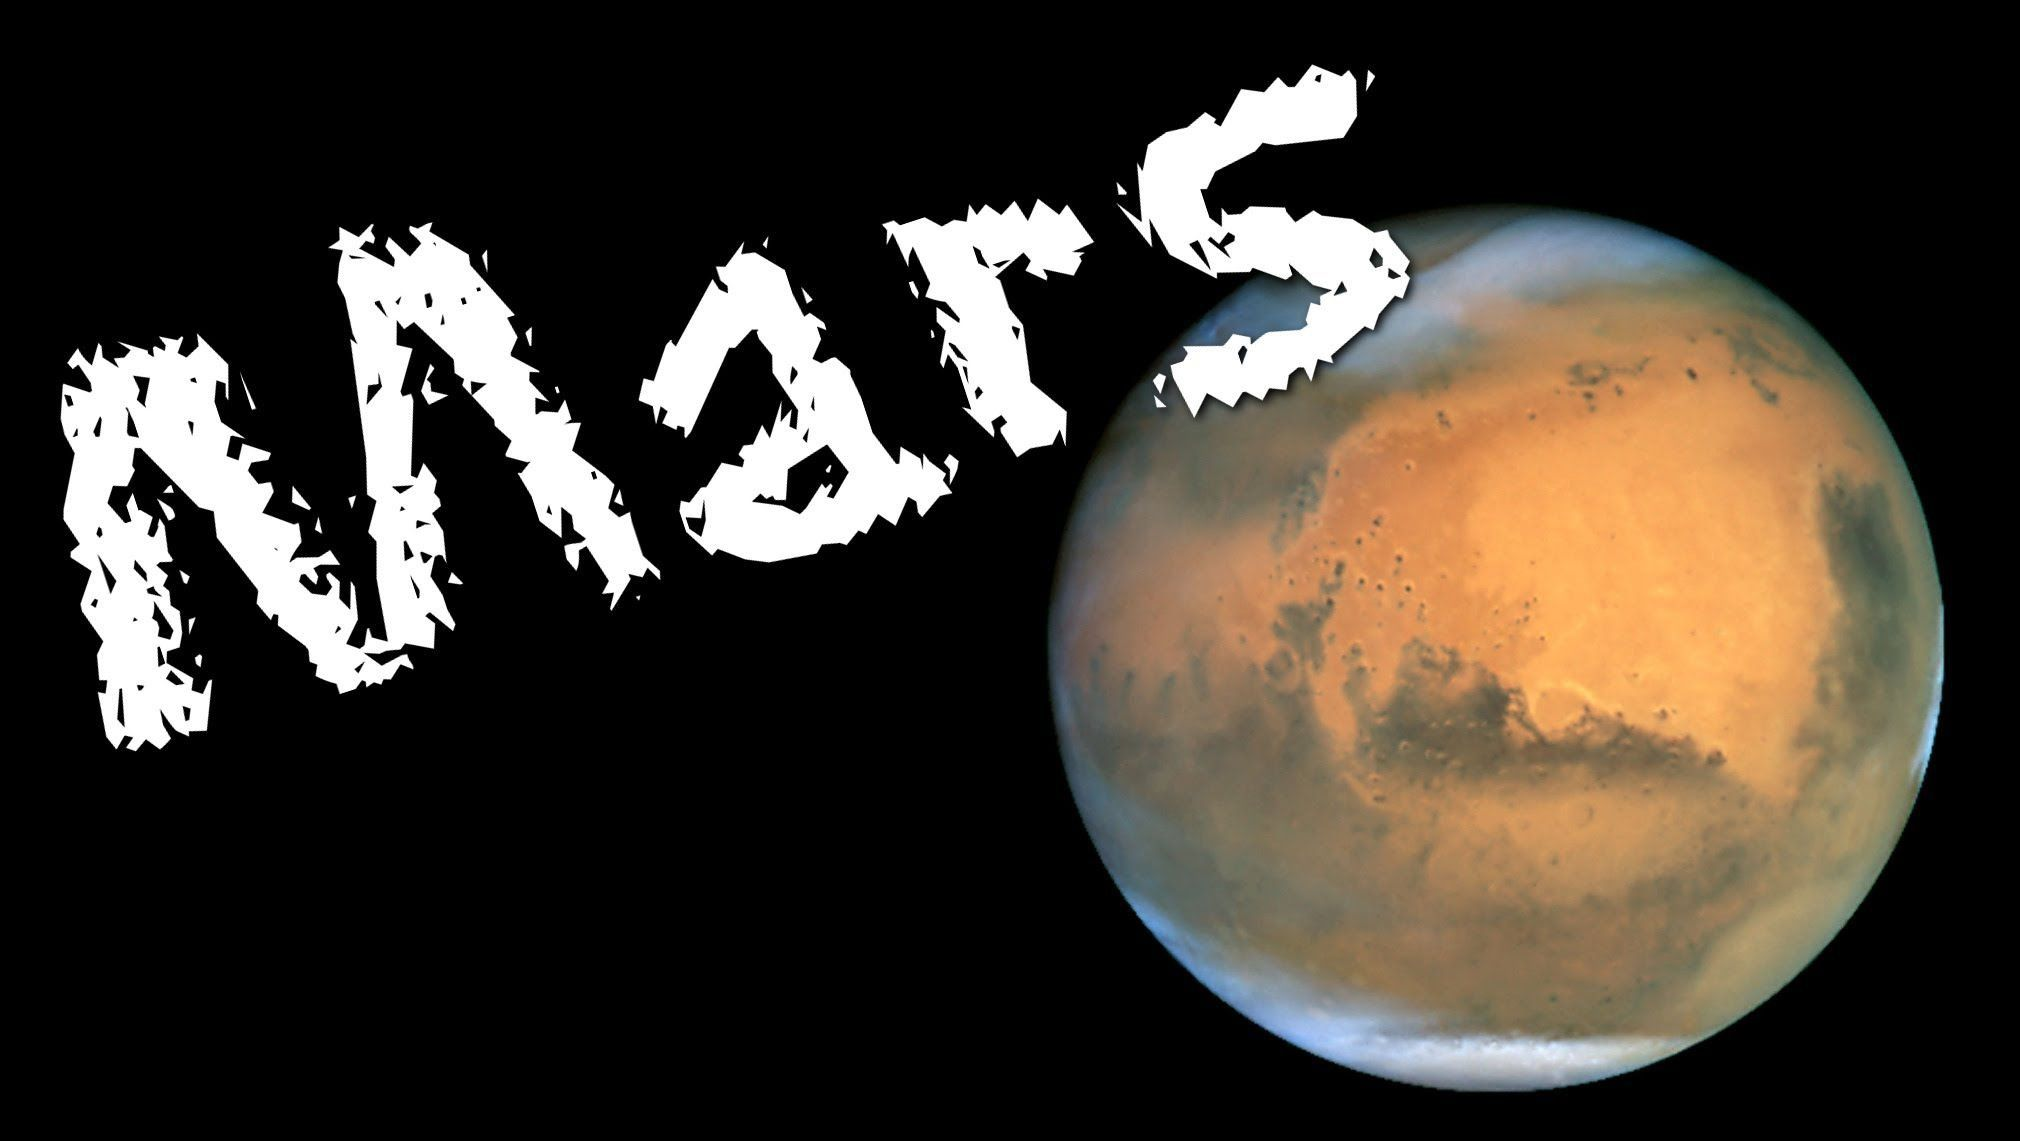 Pin By Cassy Chester On Mars